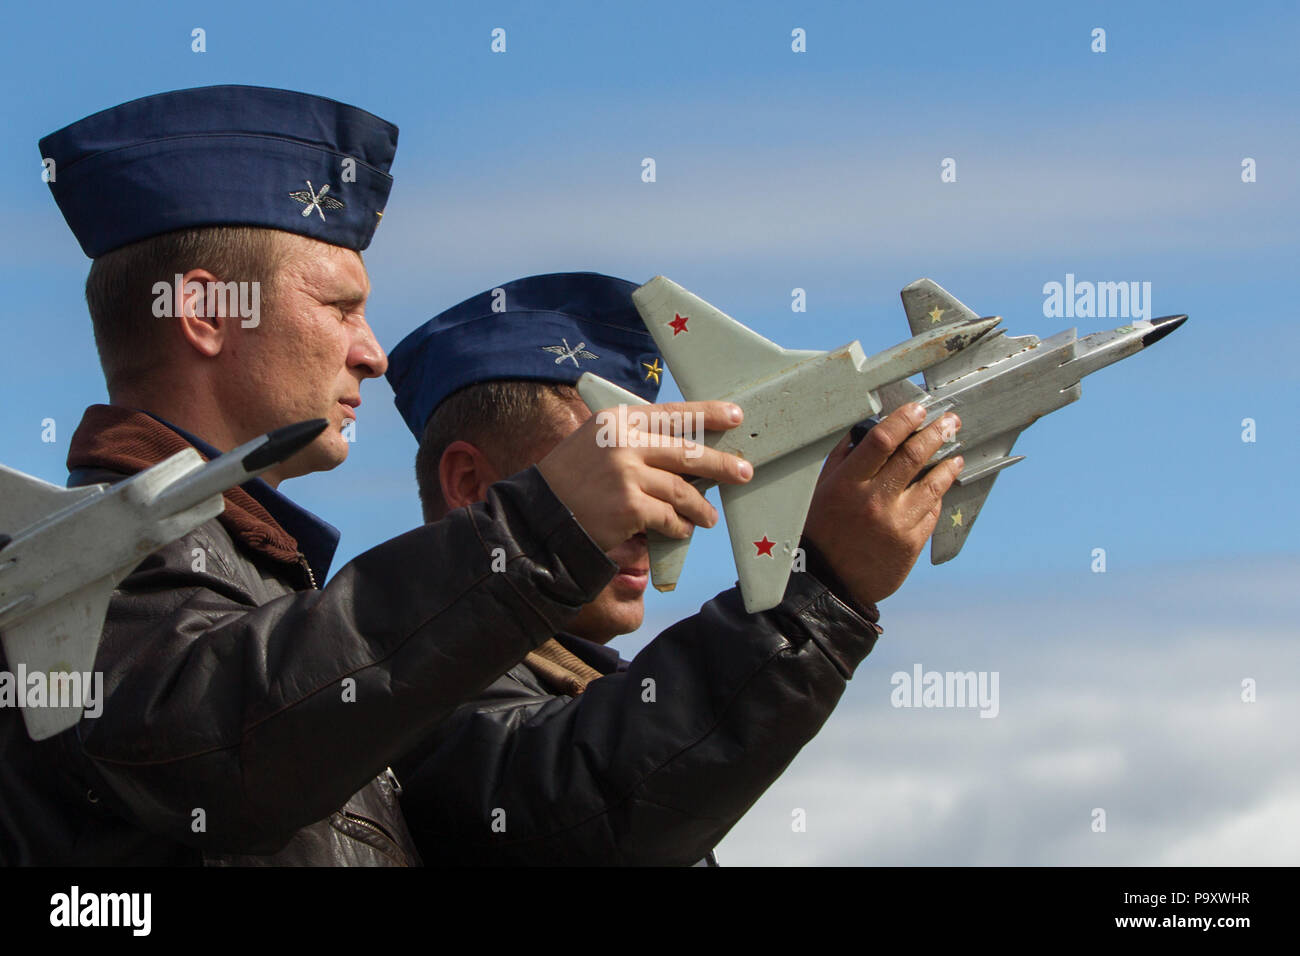 Military pilots of Russian Air Force perform ground simulation